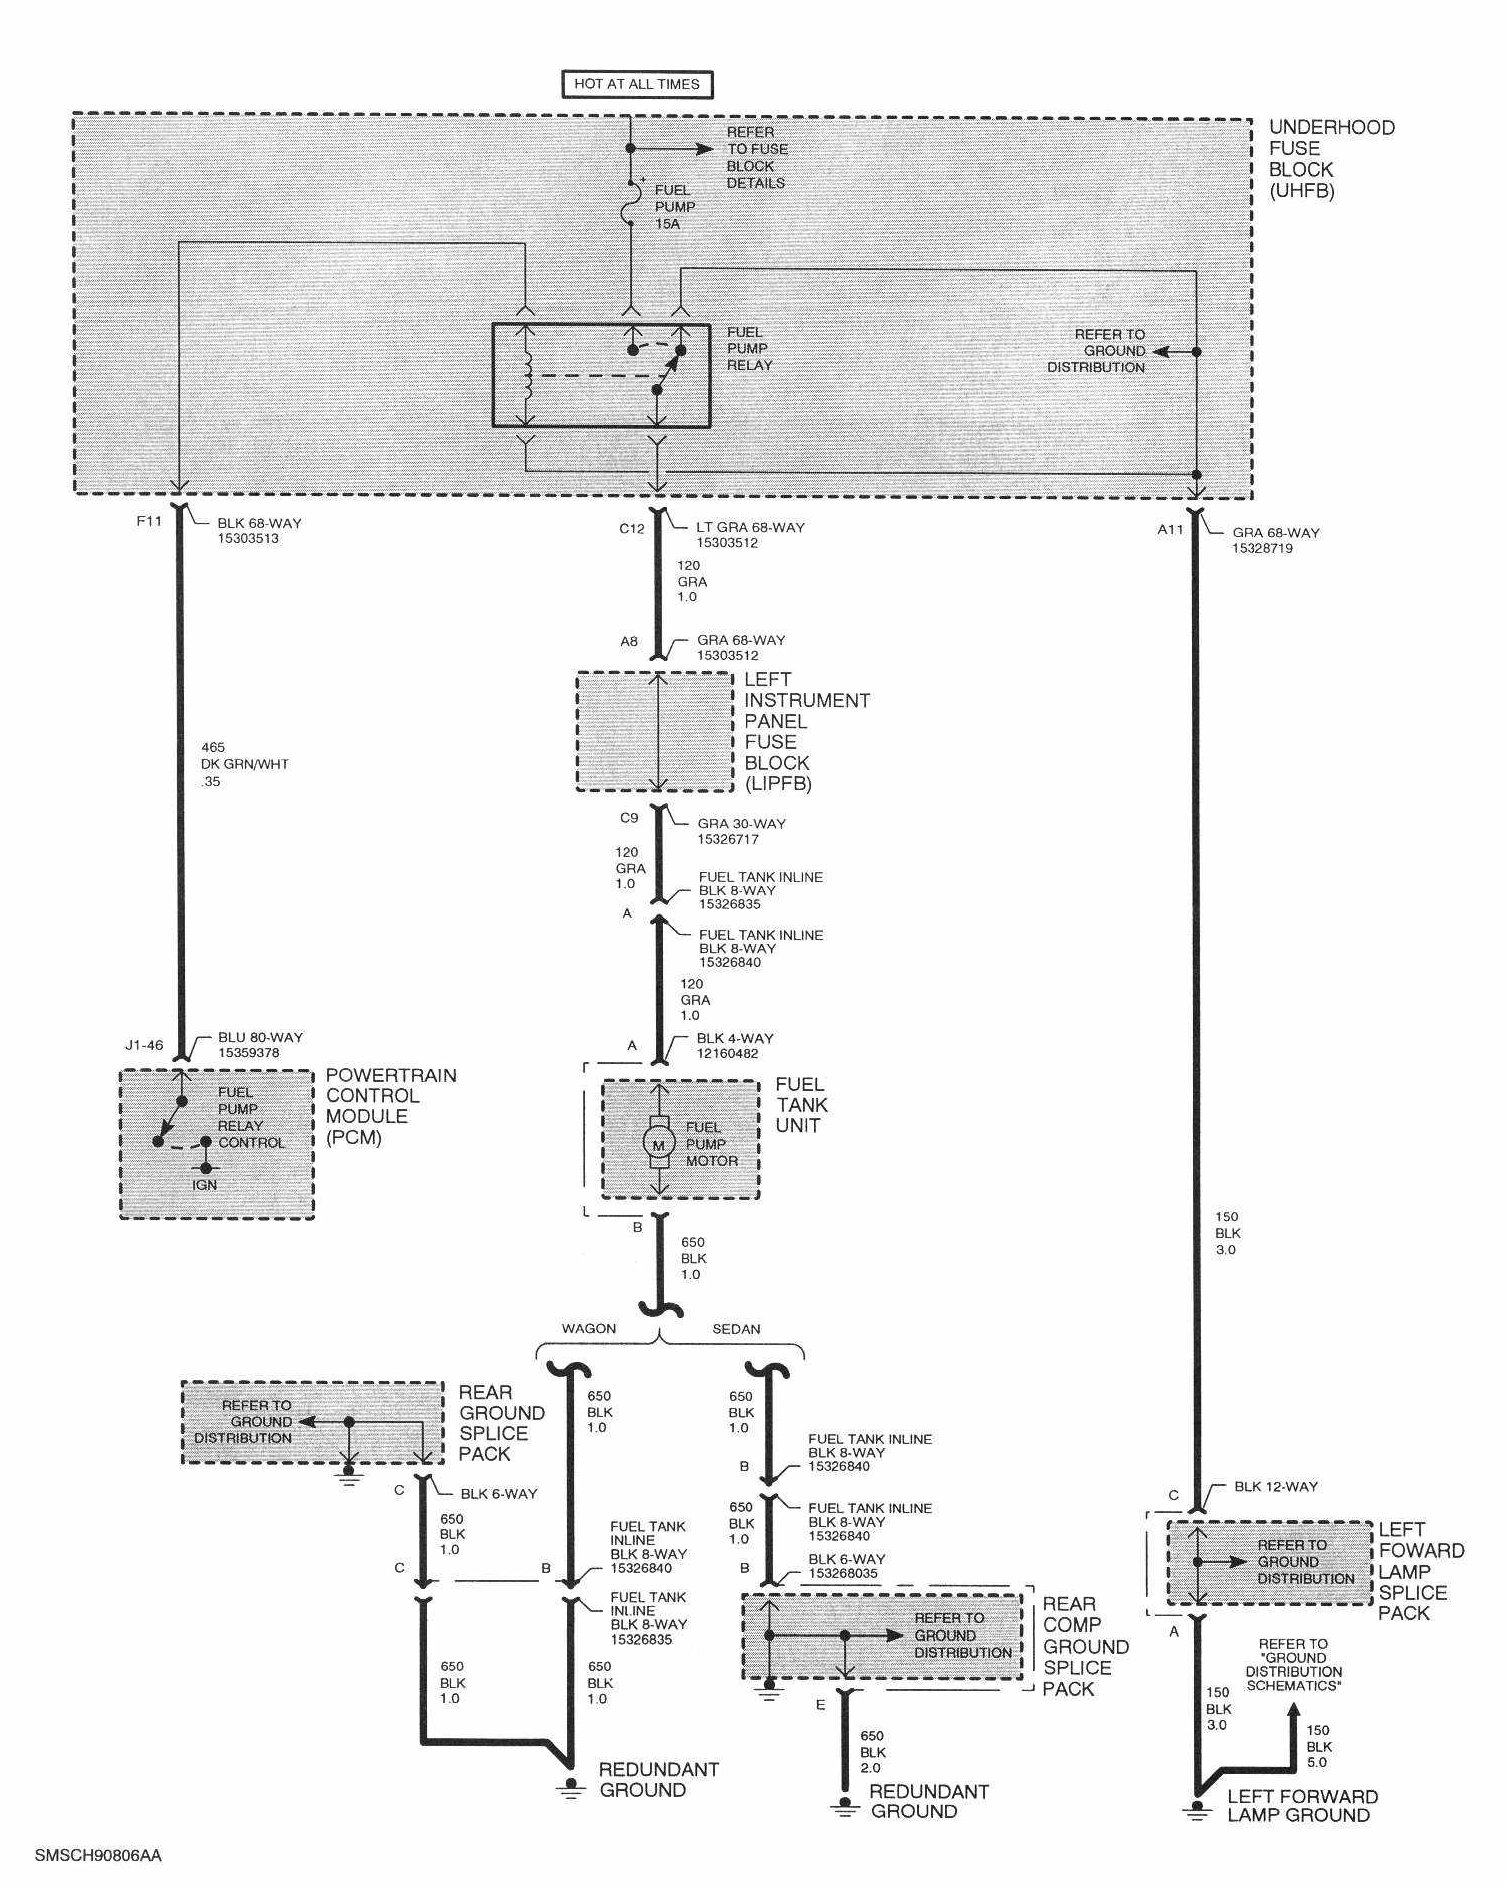 2001 Saturn Sc2 Wiring Diagram - 1978 Chevrolet Truck Wiring Diagram for Wiring  Diagram SchematicsWiring Diagram Schematics